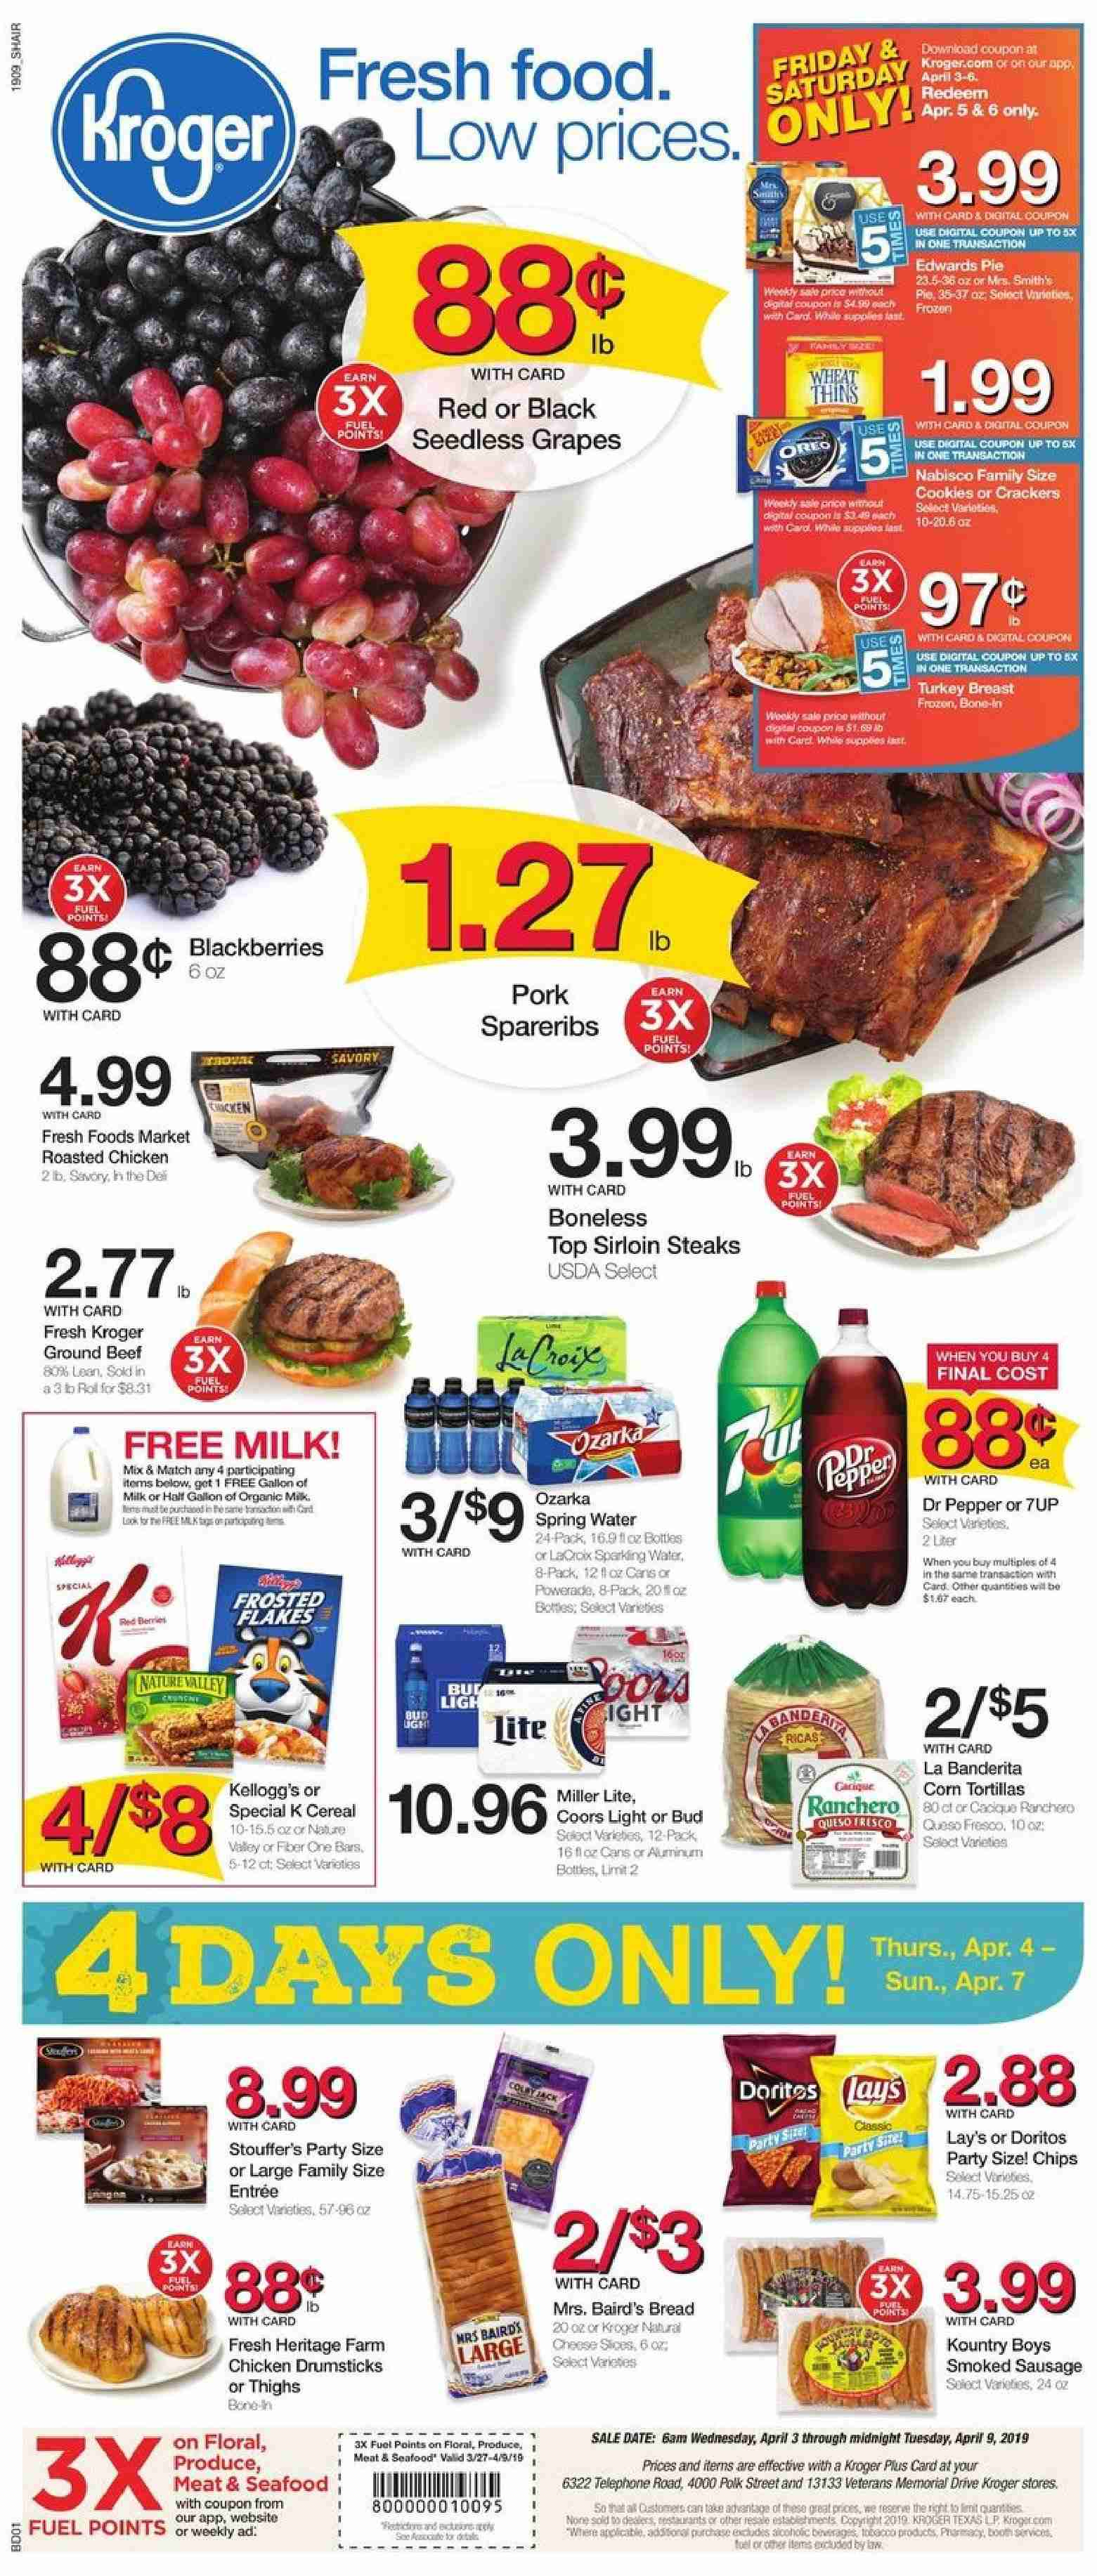 Kroger Flyer - 04.03.2019 - 04.09.2019 - Sales products - beef meat, blackberries, bread, cereals, corn, corn tortillas, fuel, grapes, ground beef, milk, miller lite, sausage, seedless grapes, smoked sausage, spring water, tortillas, polk, powerade, chicken, organic, chips, pie, pepper, sparkling water, seafood, cereal, lay's, miller, coors, dr. pepper, meat. Page 1.